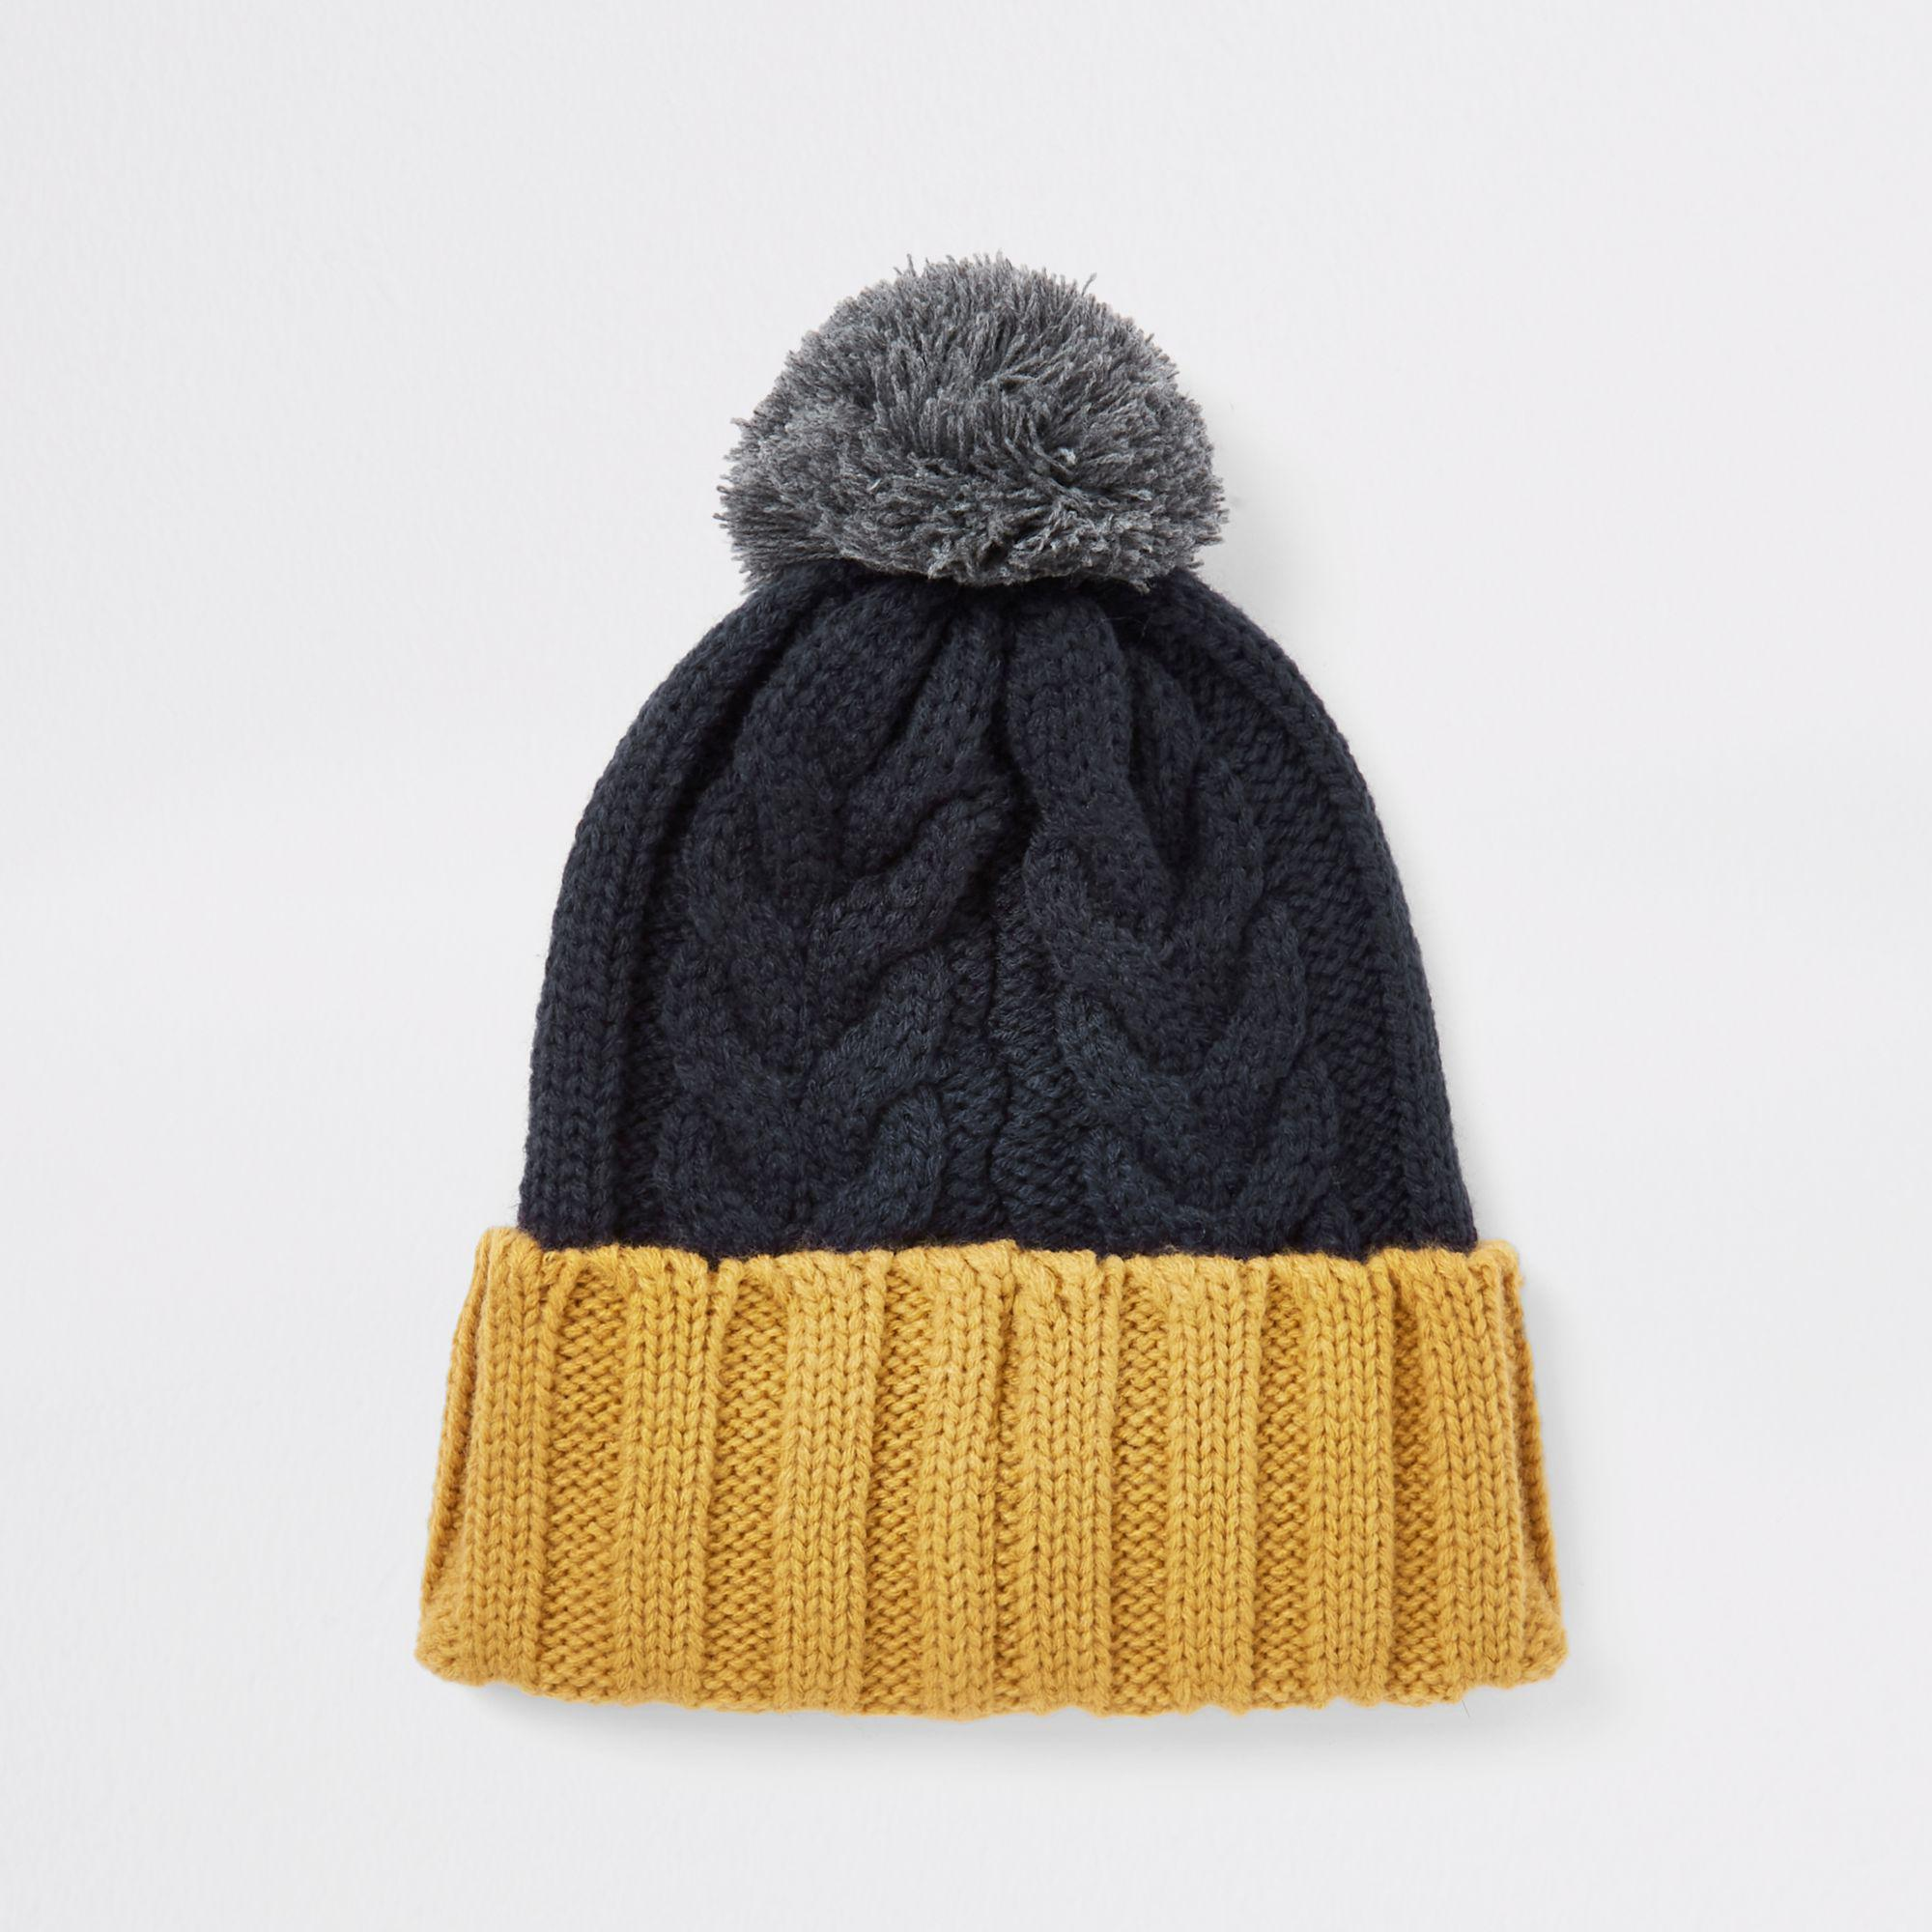 784bd8d5c9a River Island Block Cable Knit Bobble Beanie Hat in Blue for Men - Lyst